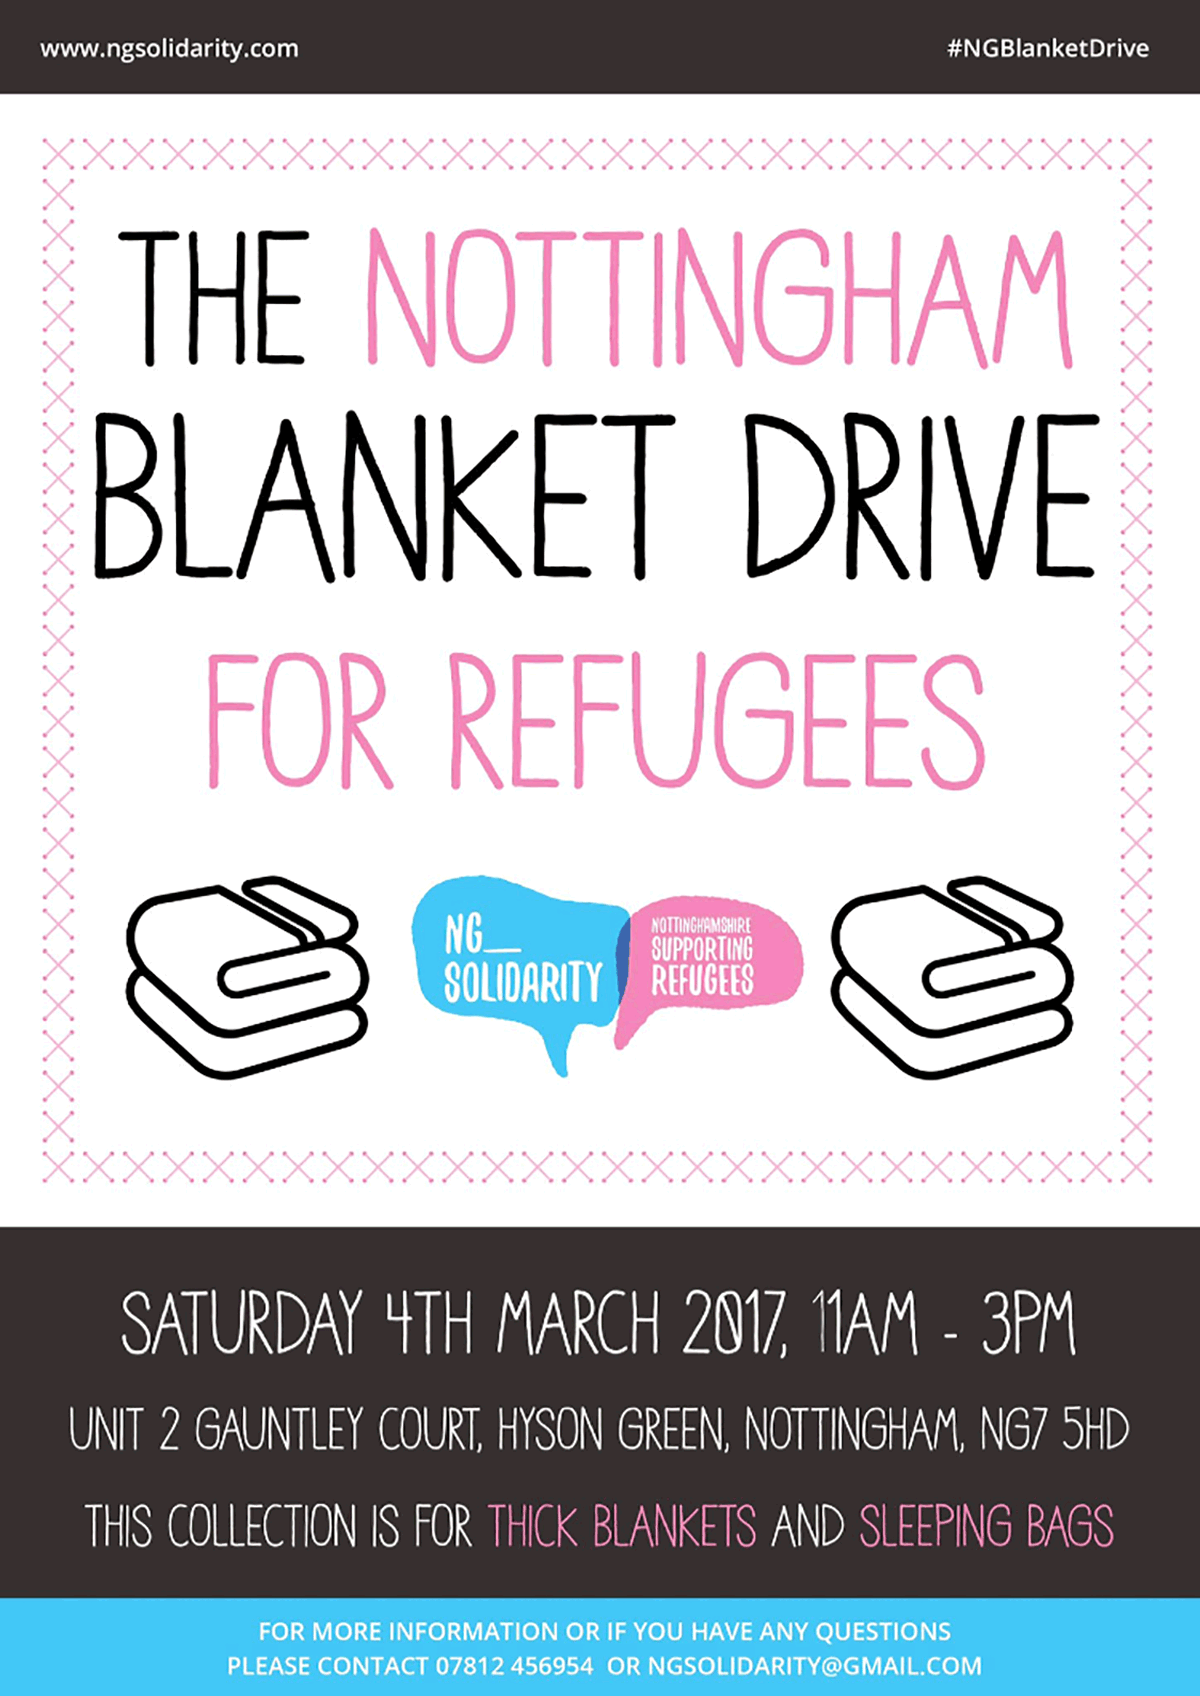 Poster for Nottingham Blanket Drive for Refugees